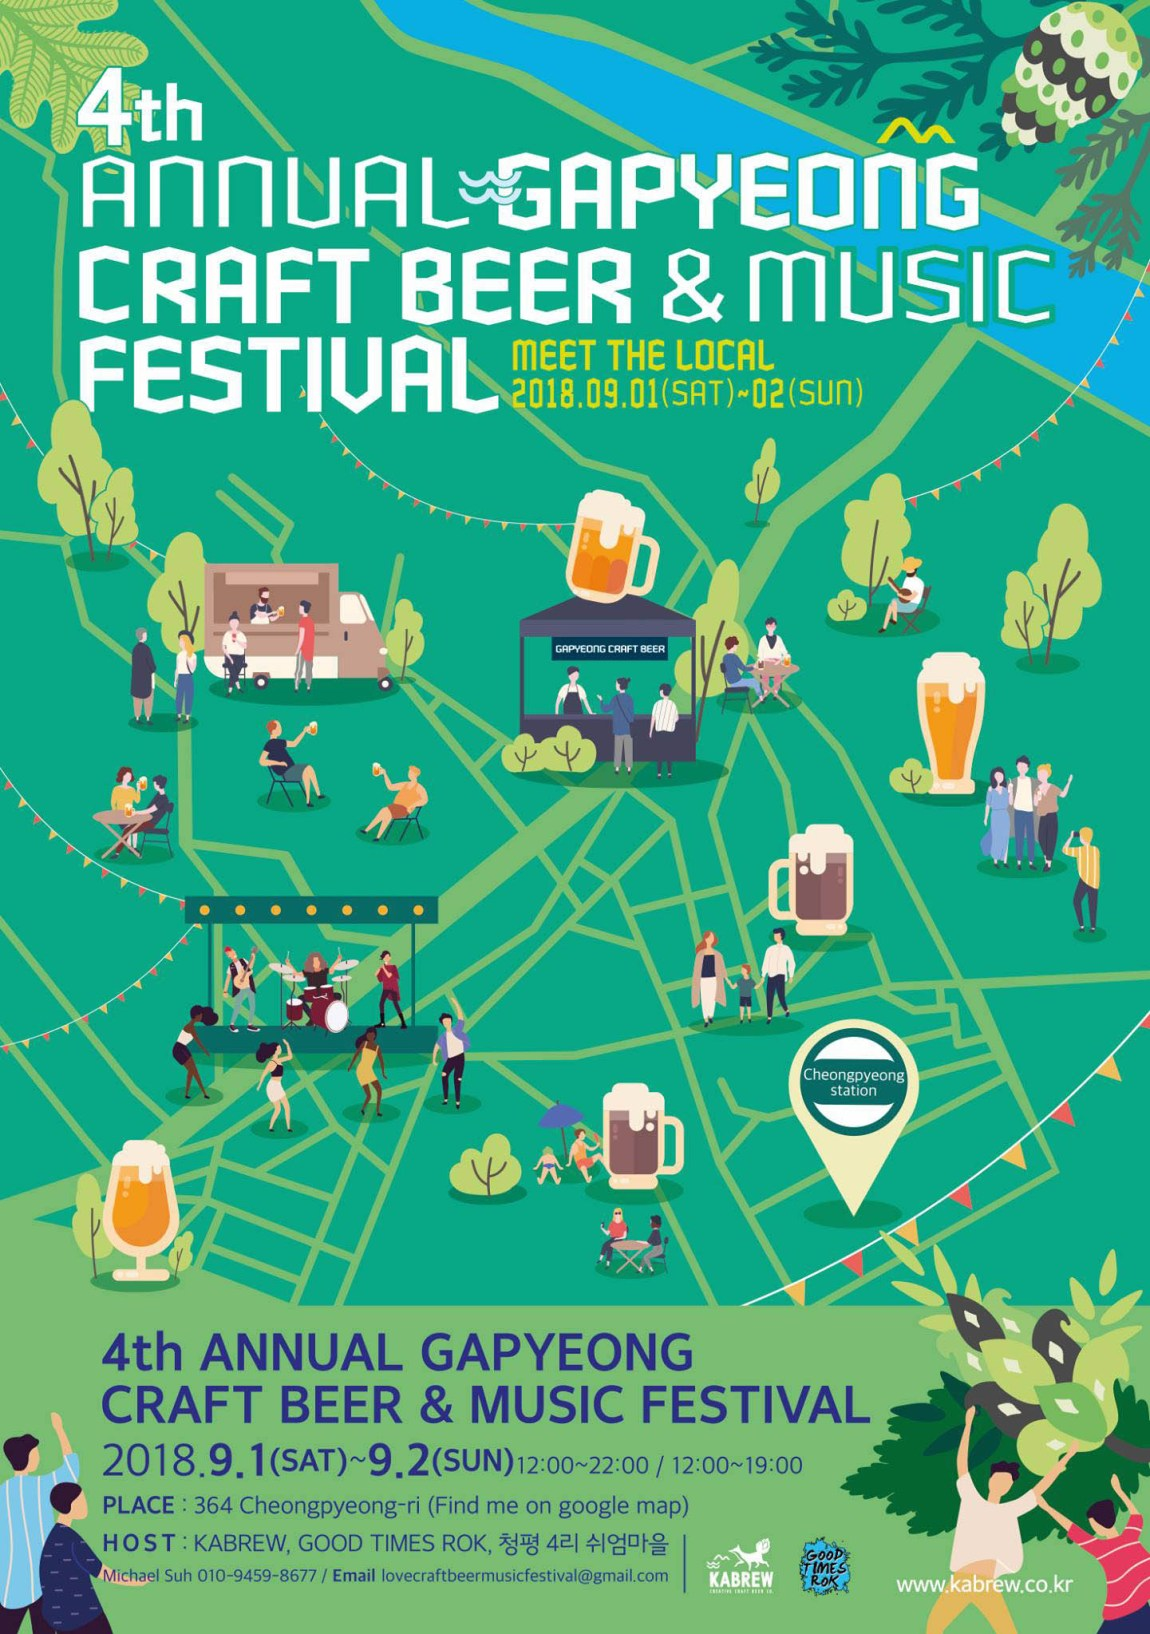 Music concerts, various events awaiting beer lovers in Korea